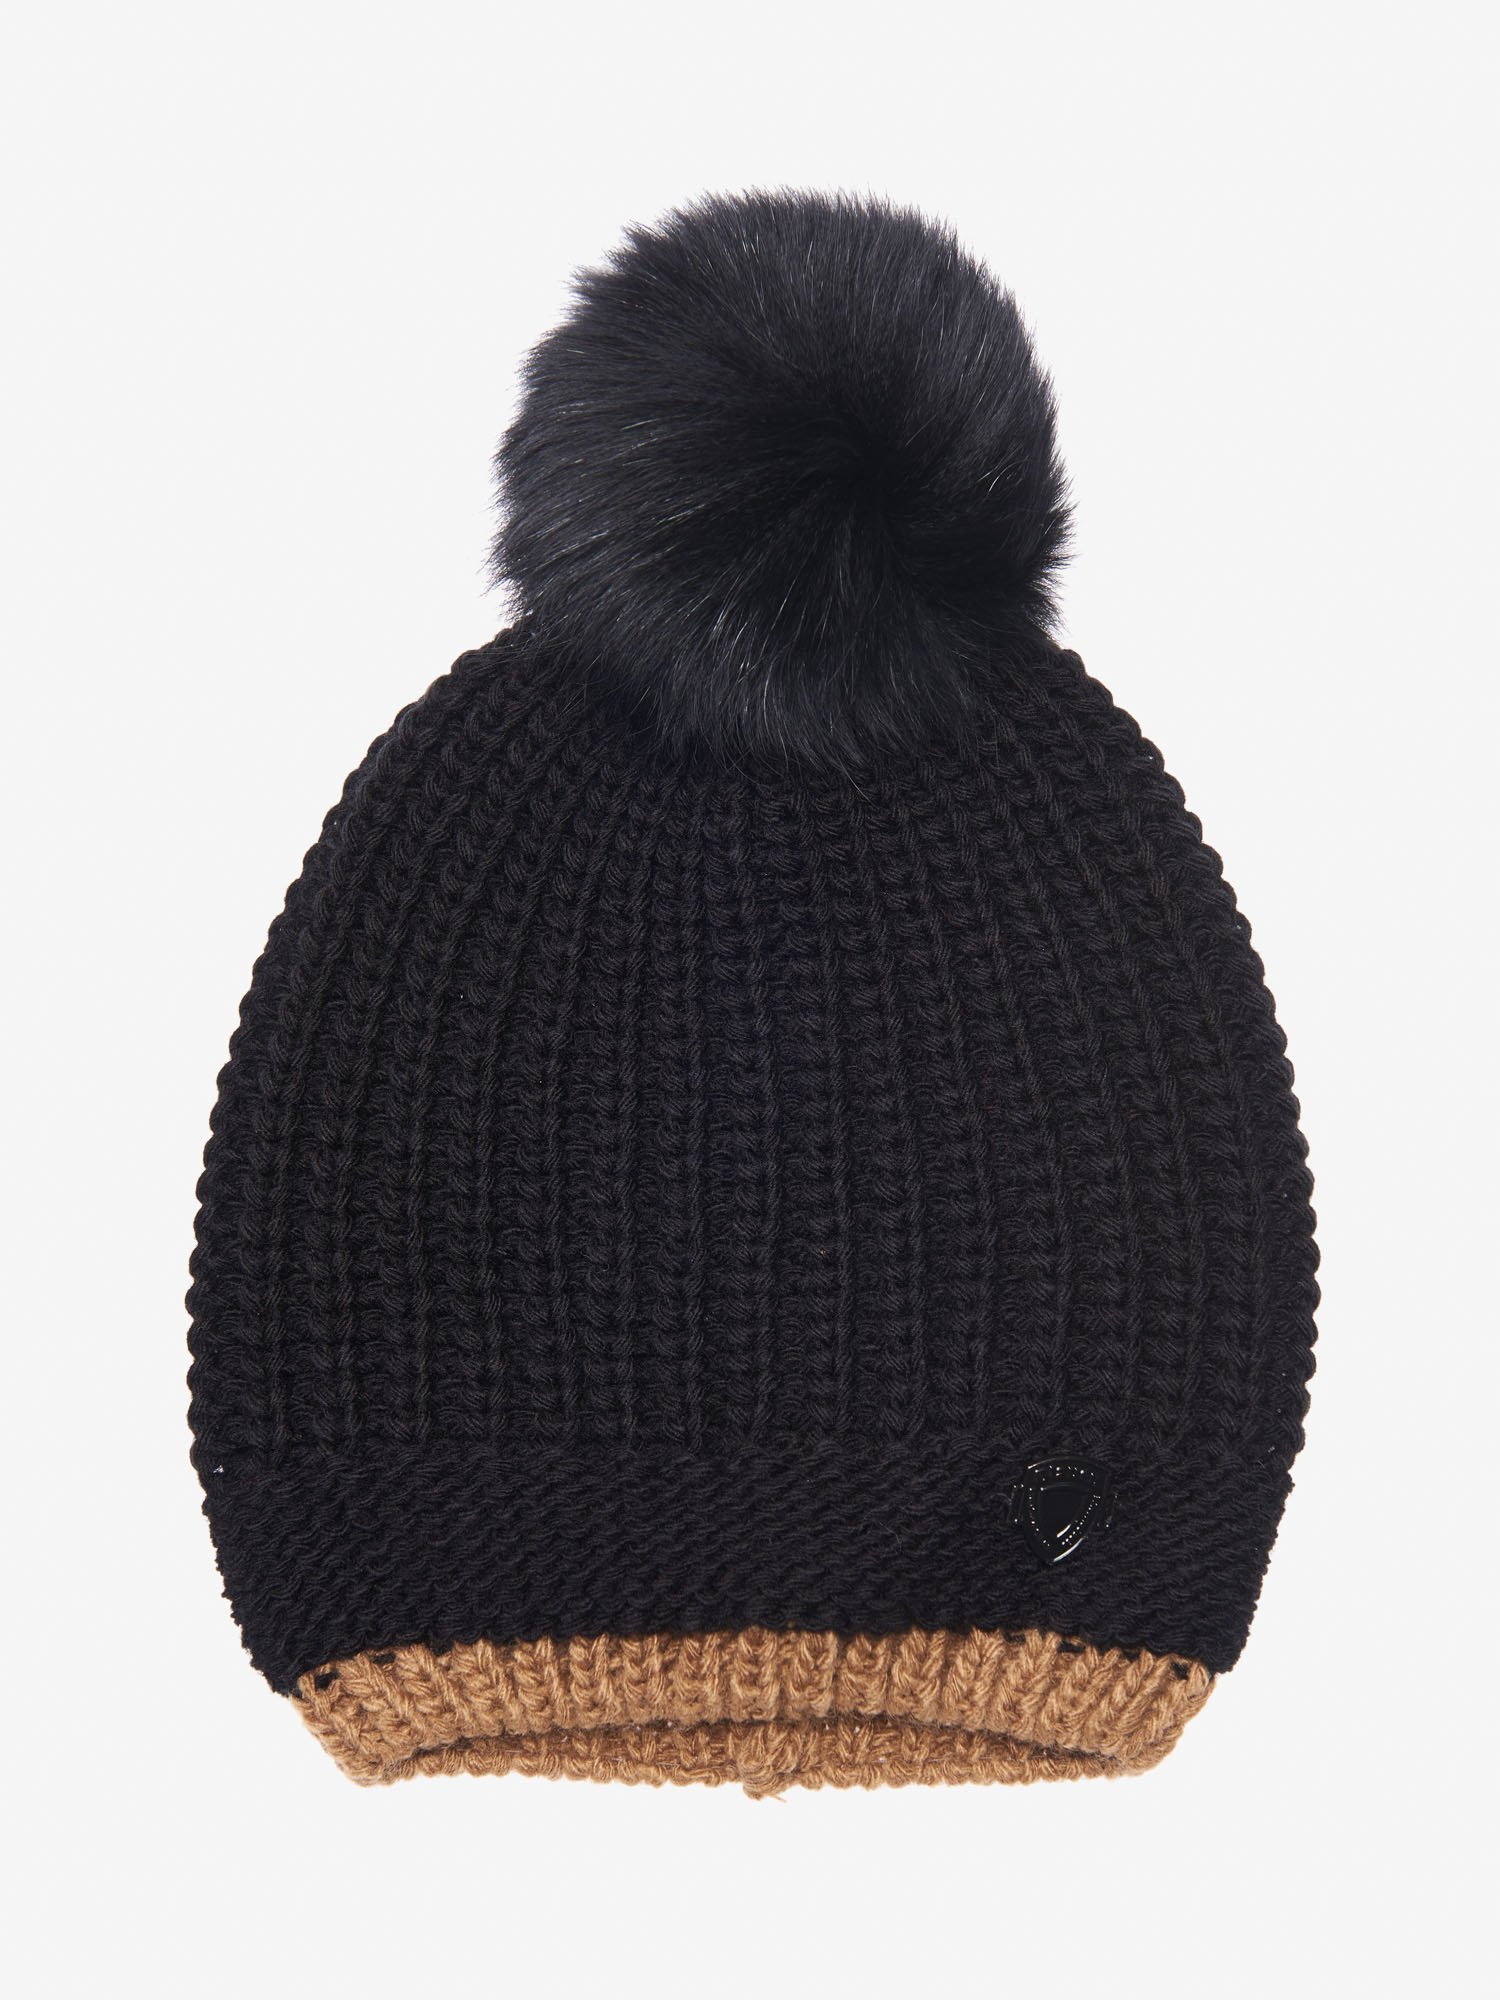 HAT WITH POMPOM - Blauer